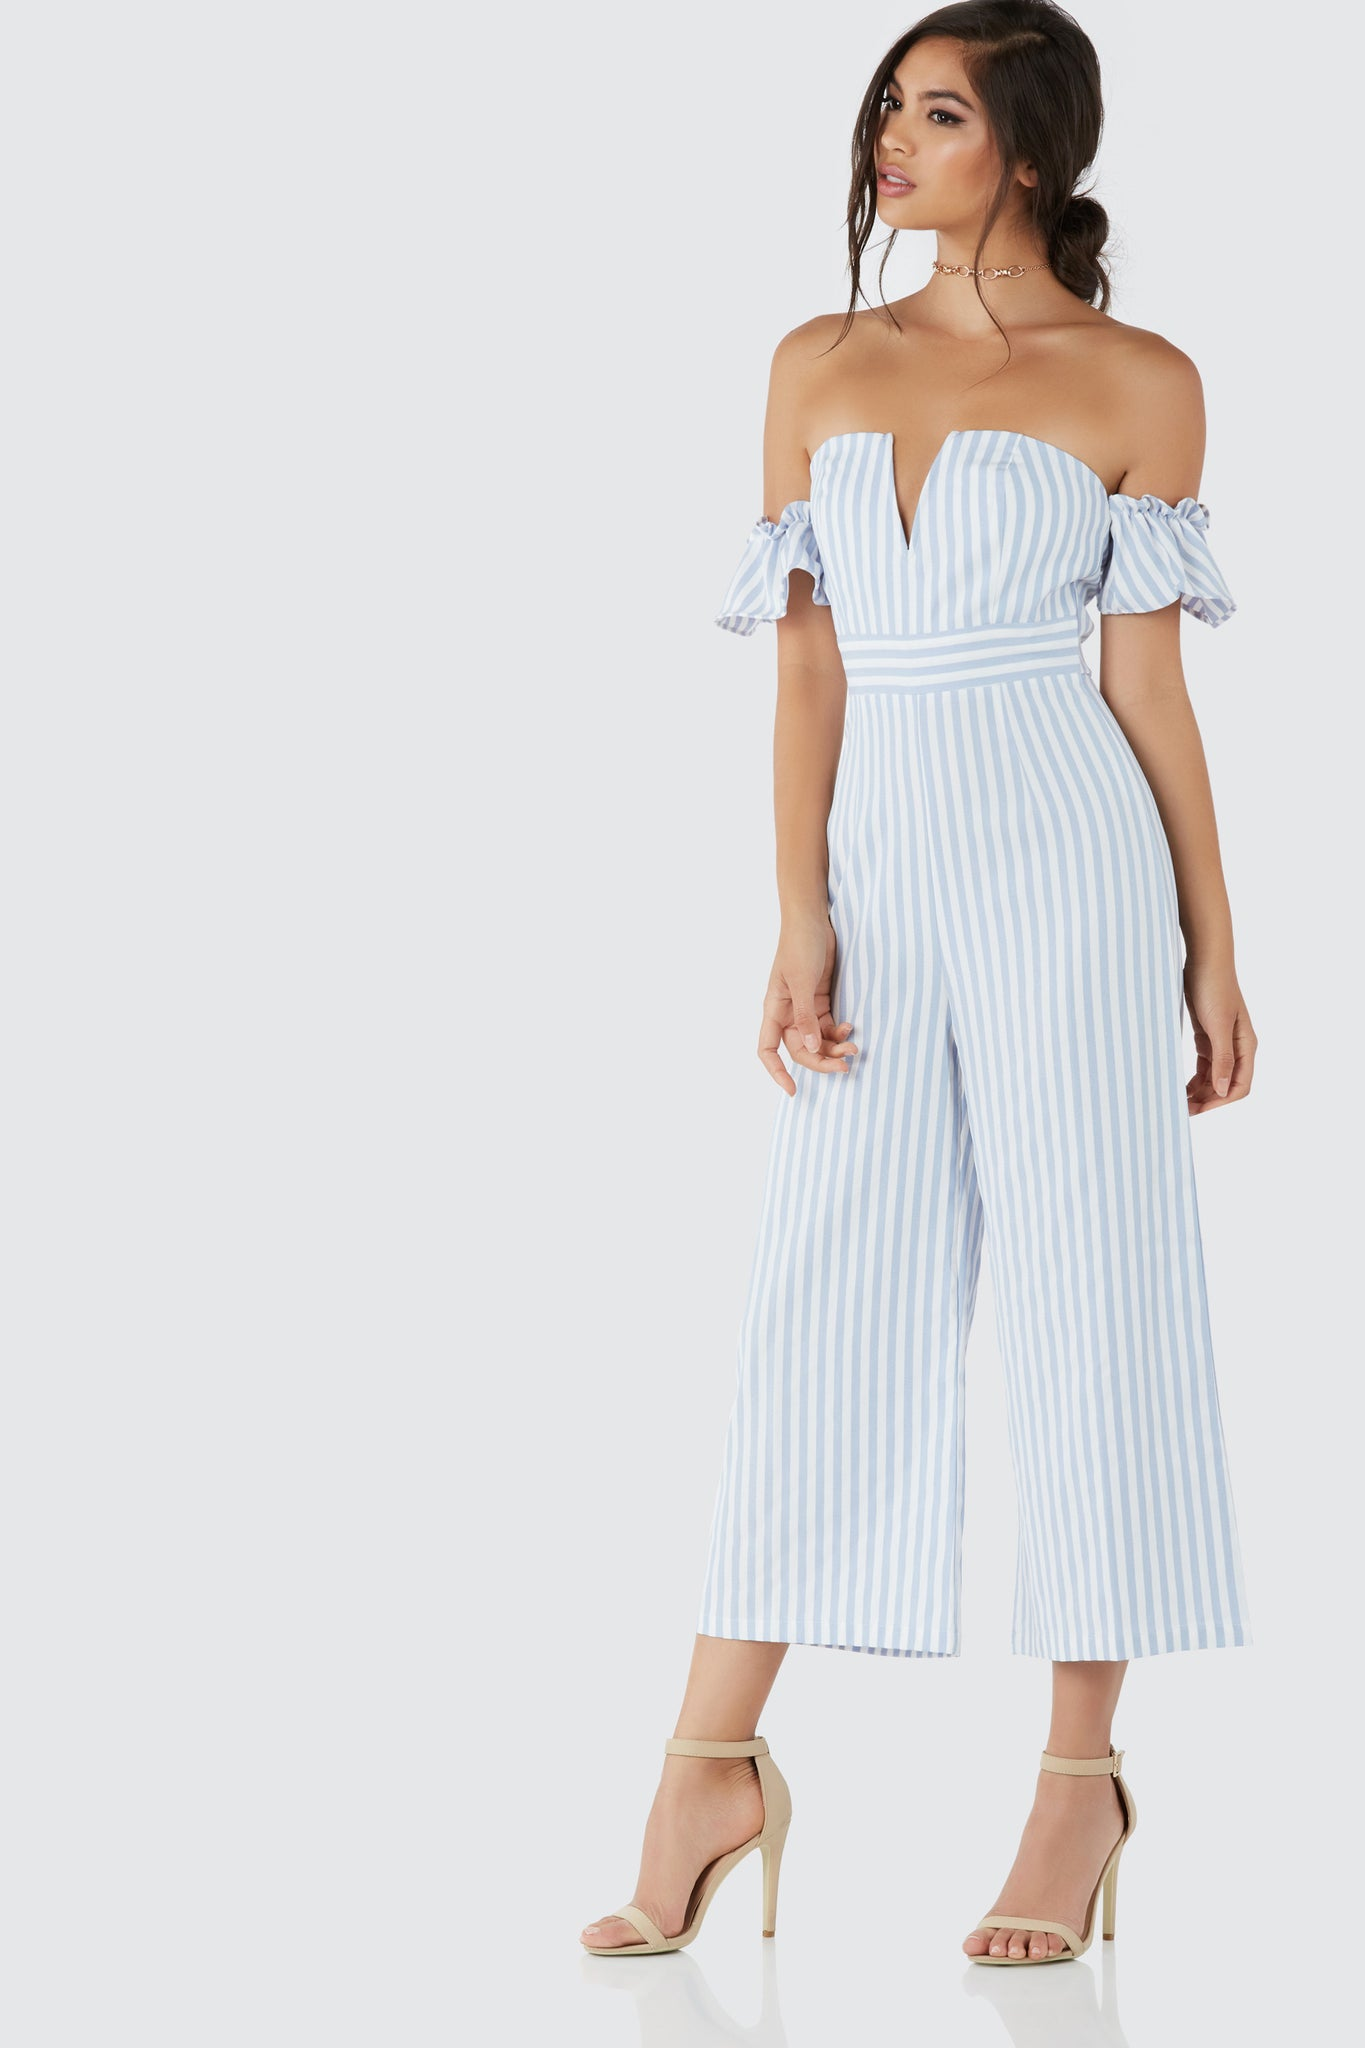 Chic off shoulder jumpsuit with wired V-cut at neckline. Stripe patterns throughout with cropped wide leg fit.